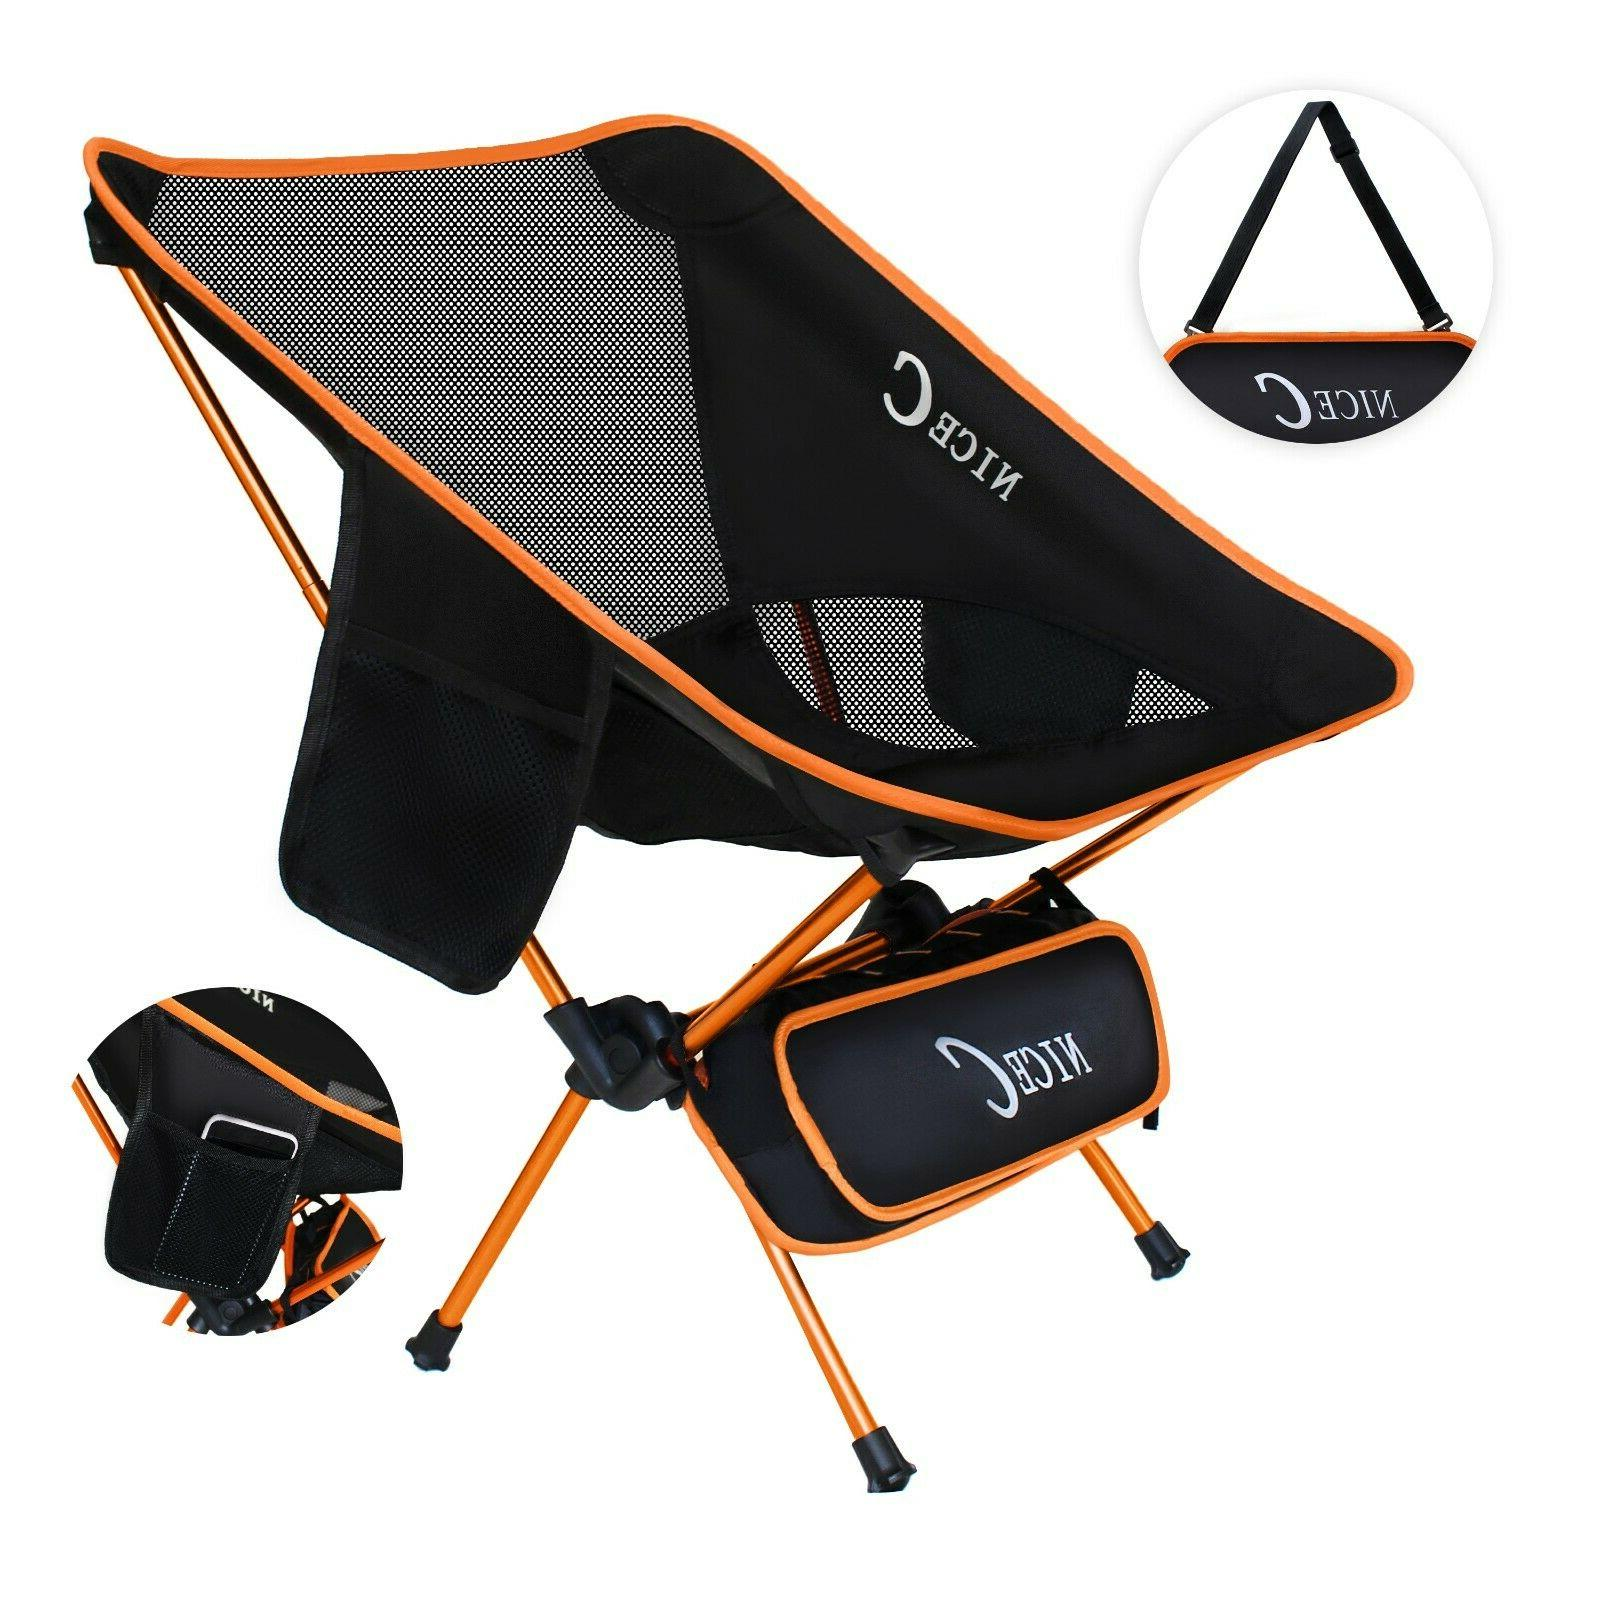 ultralight portable folding backpacking camping chair